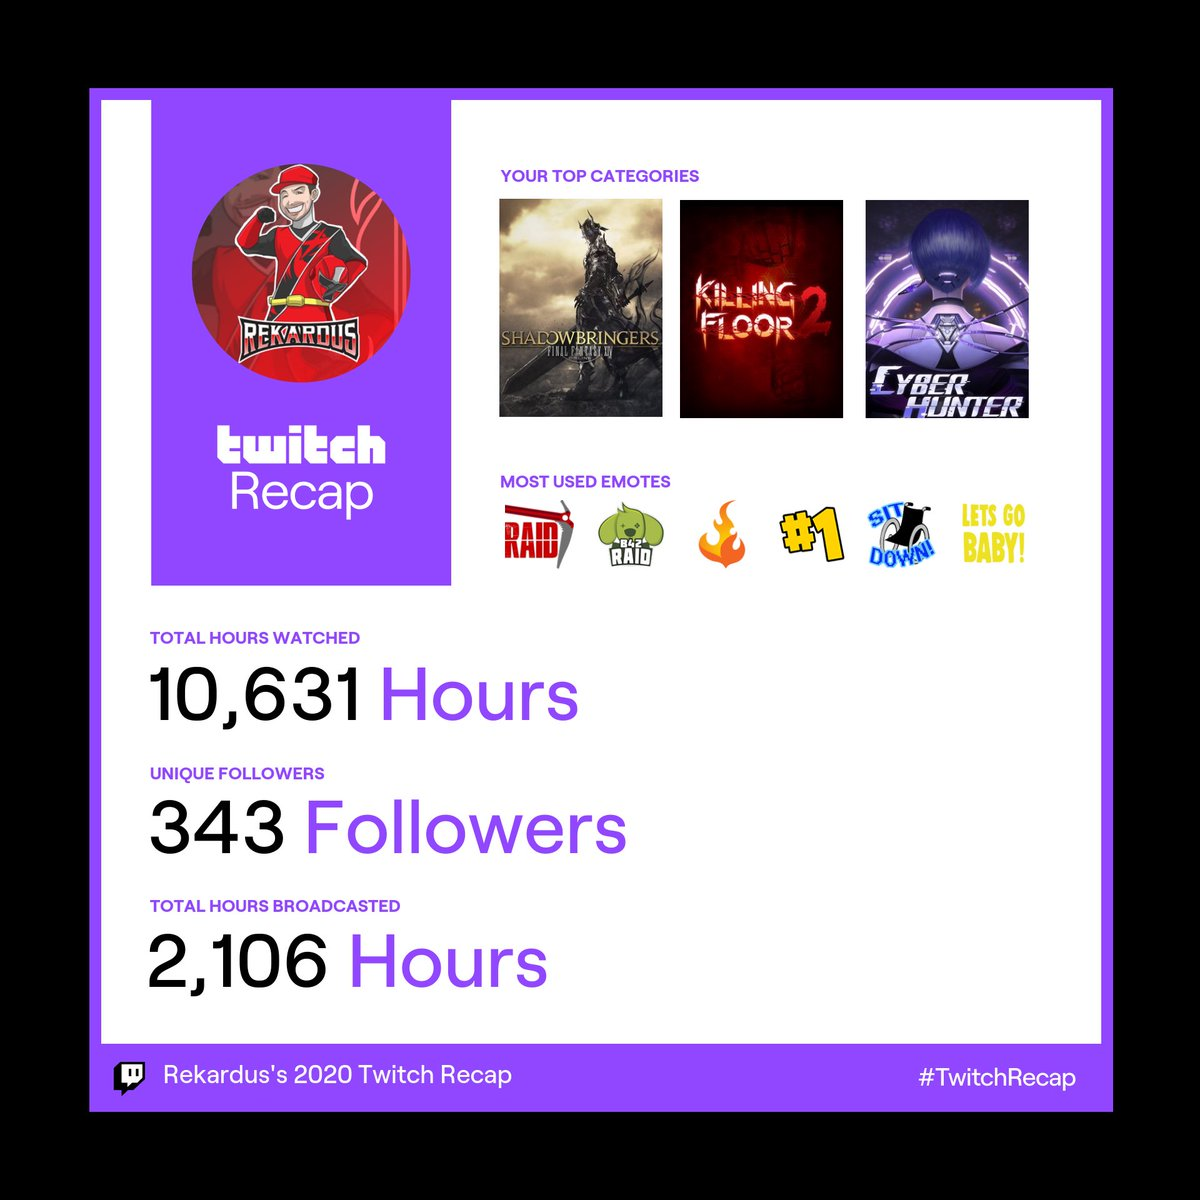 #TwitchRecap Even though 2020 was the worst thing to ever happen cause of COVID. We went out like champ on #twitch. Proud of these results and hope I can do better this year :) #TeamB42